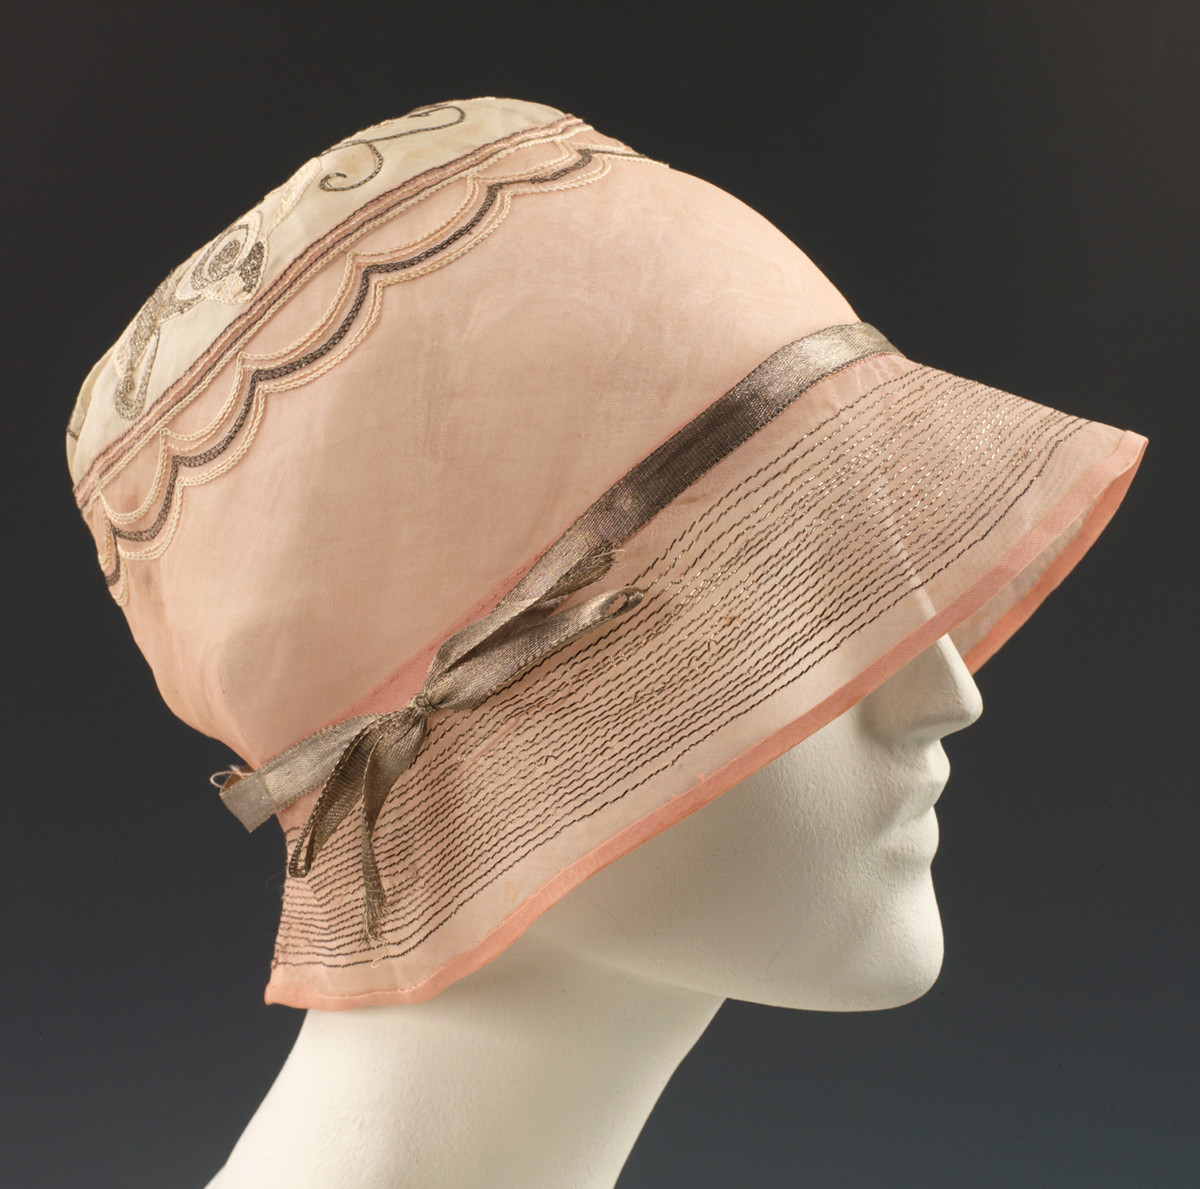 1925 Evening cloche. House of Lanvin. French. Cotton, metal